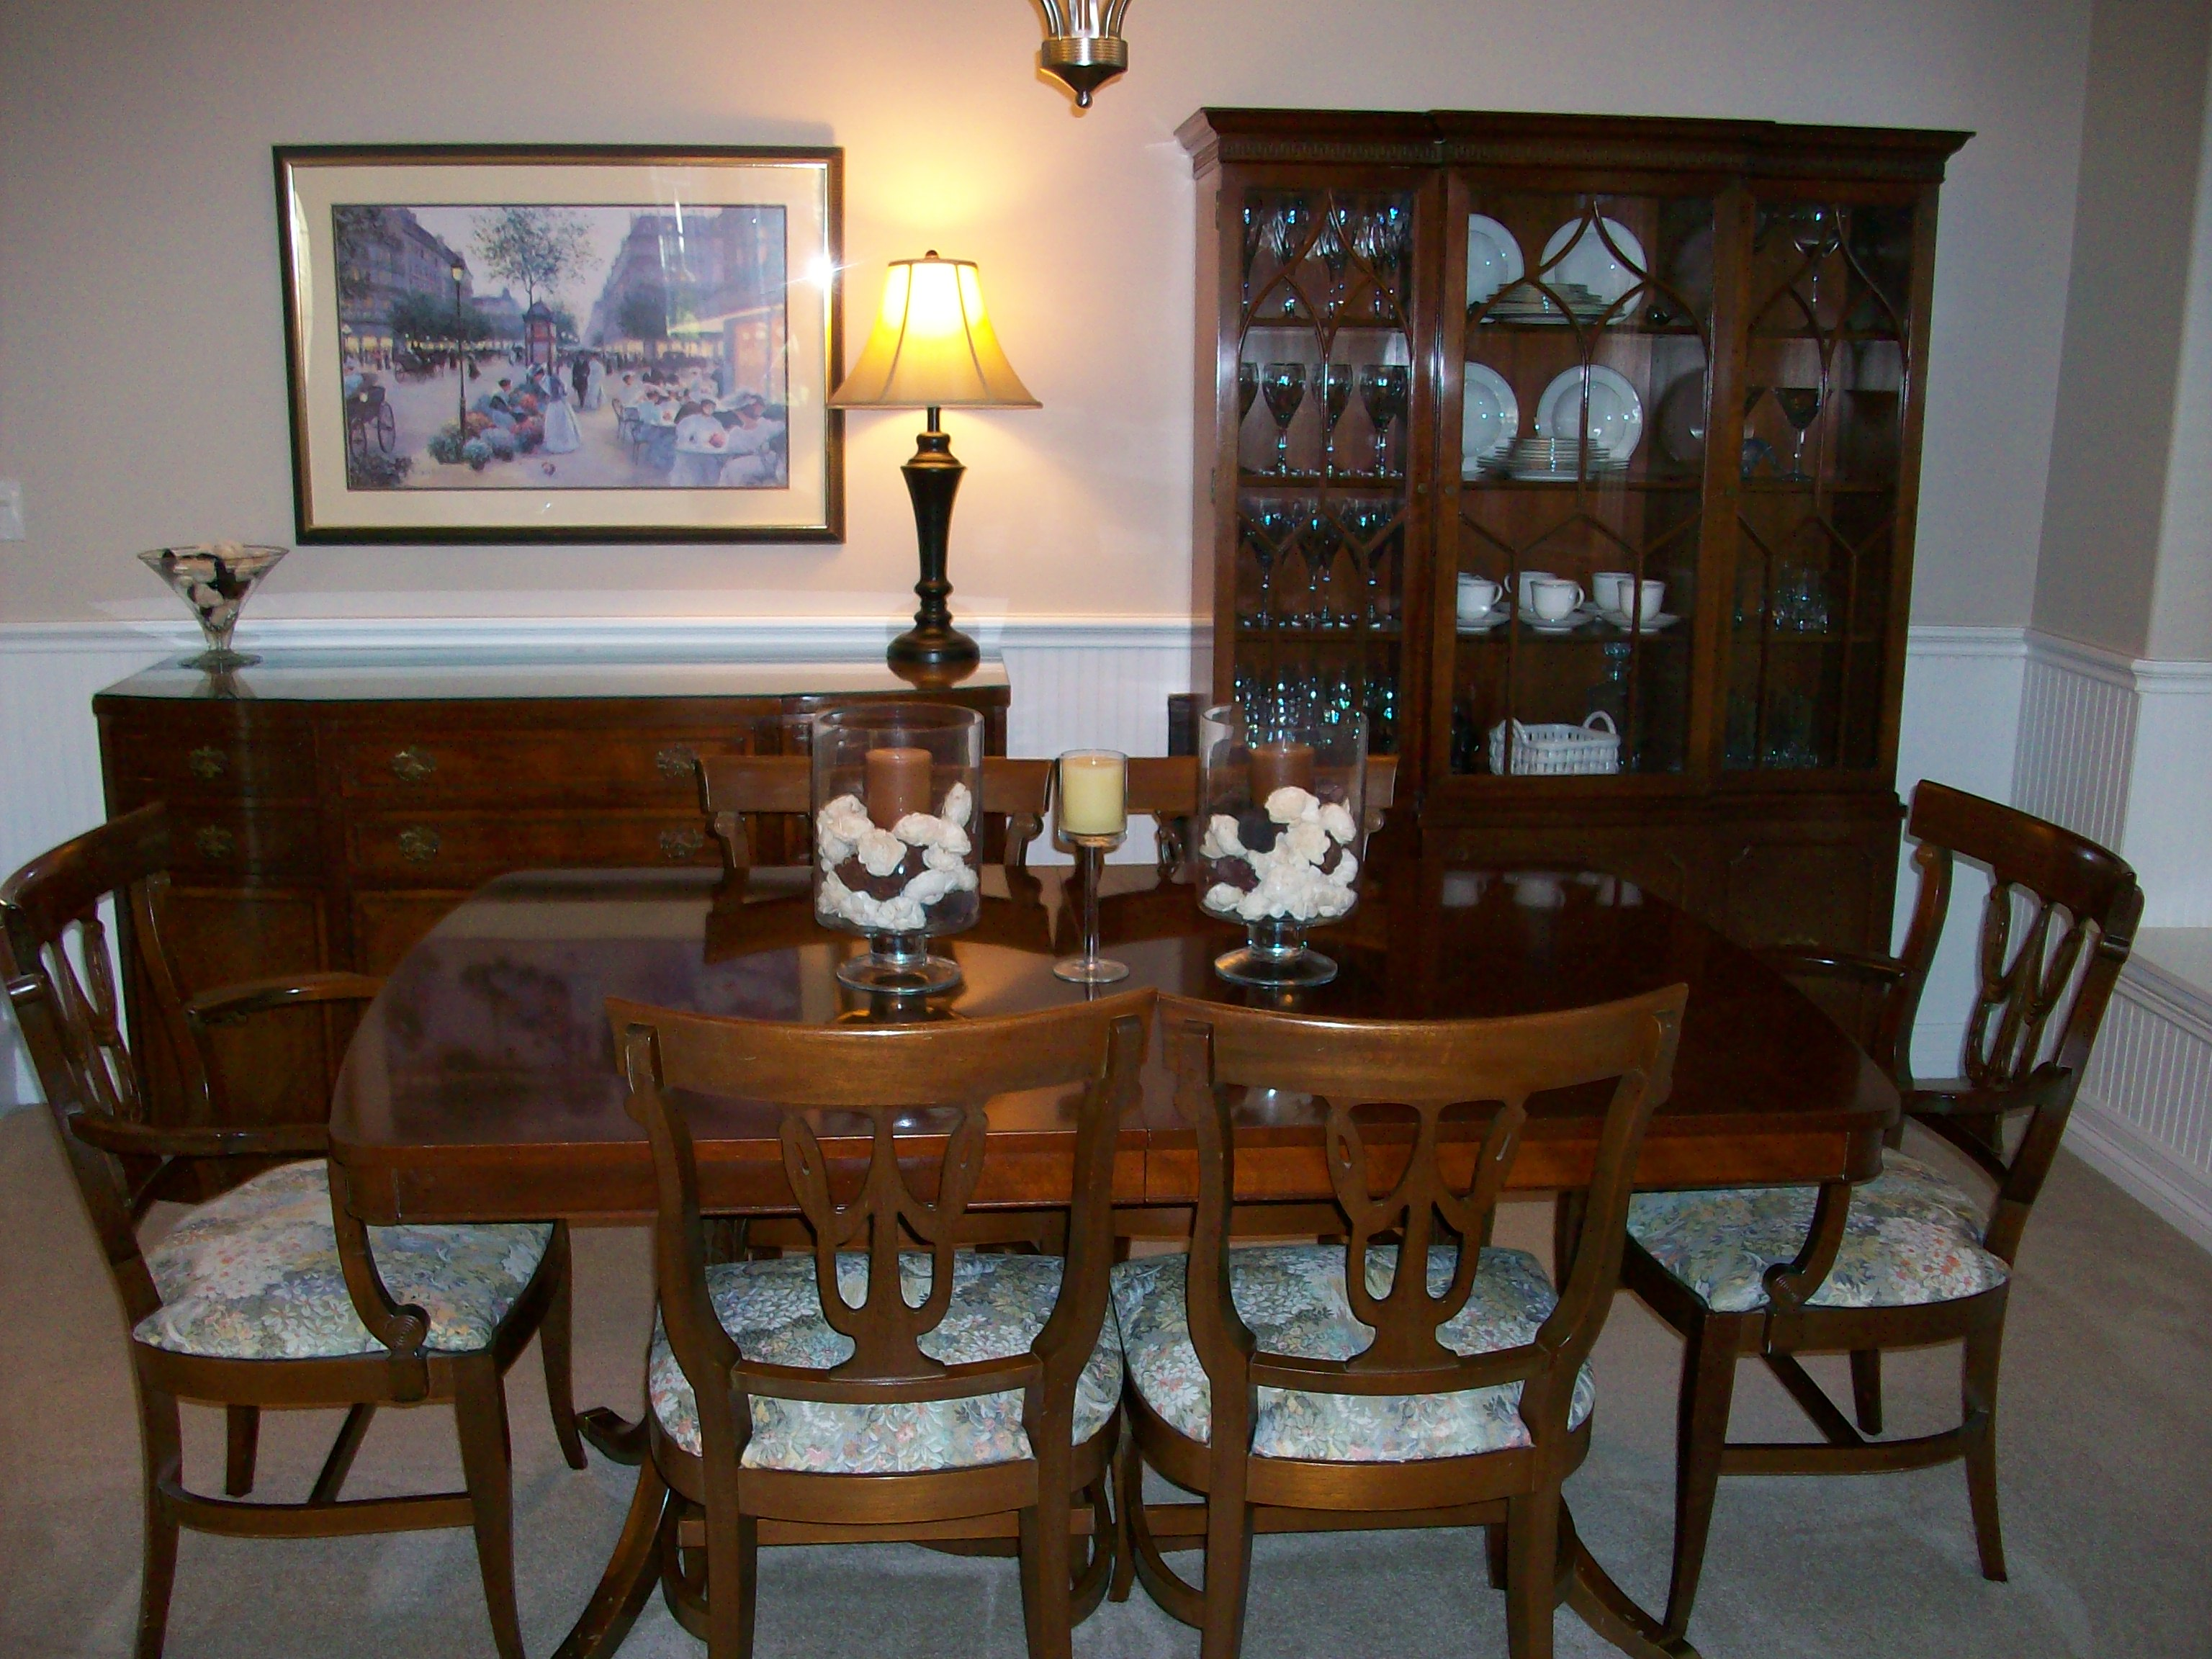 Rway 10 piece dining room set antique appraisal for R way dining room furniture